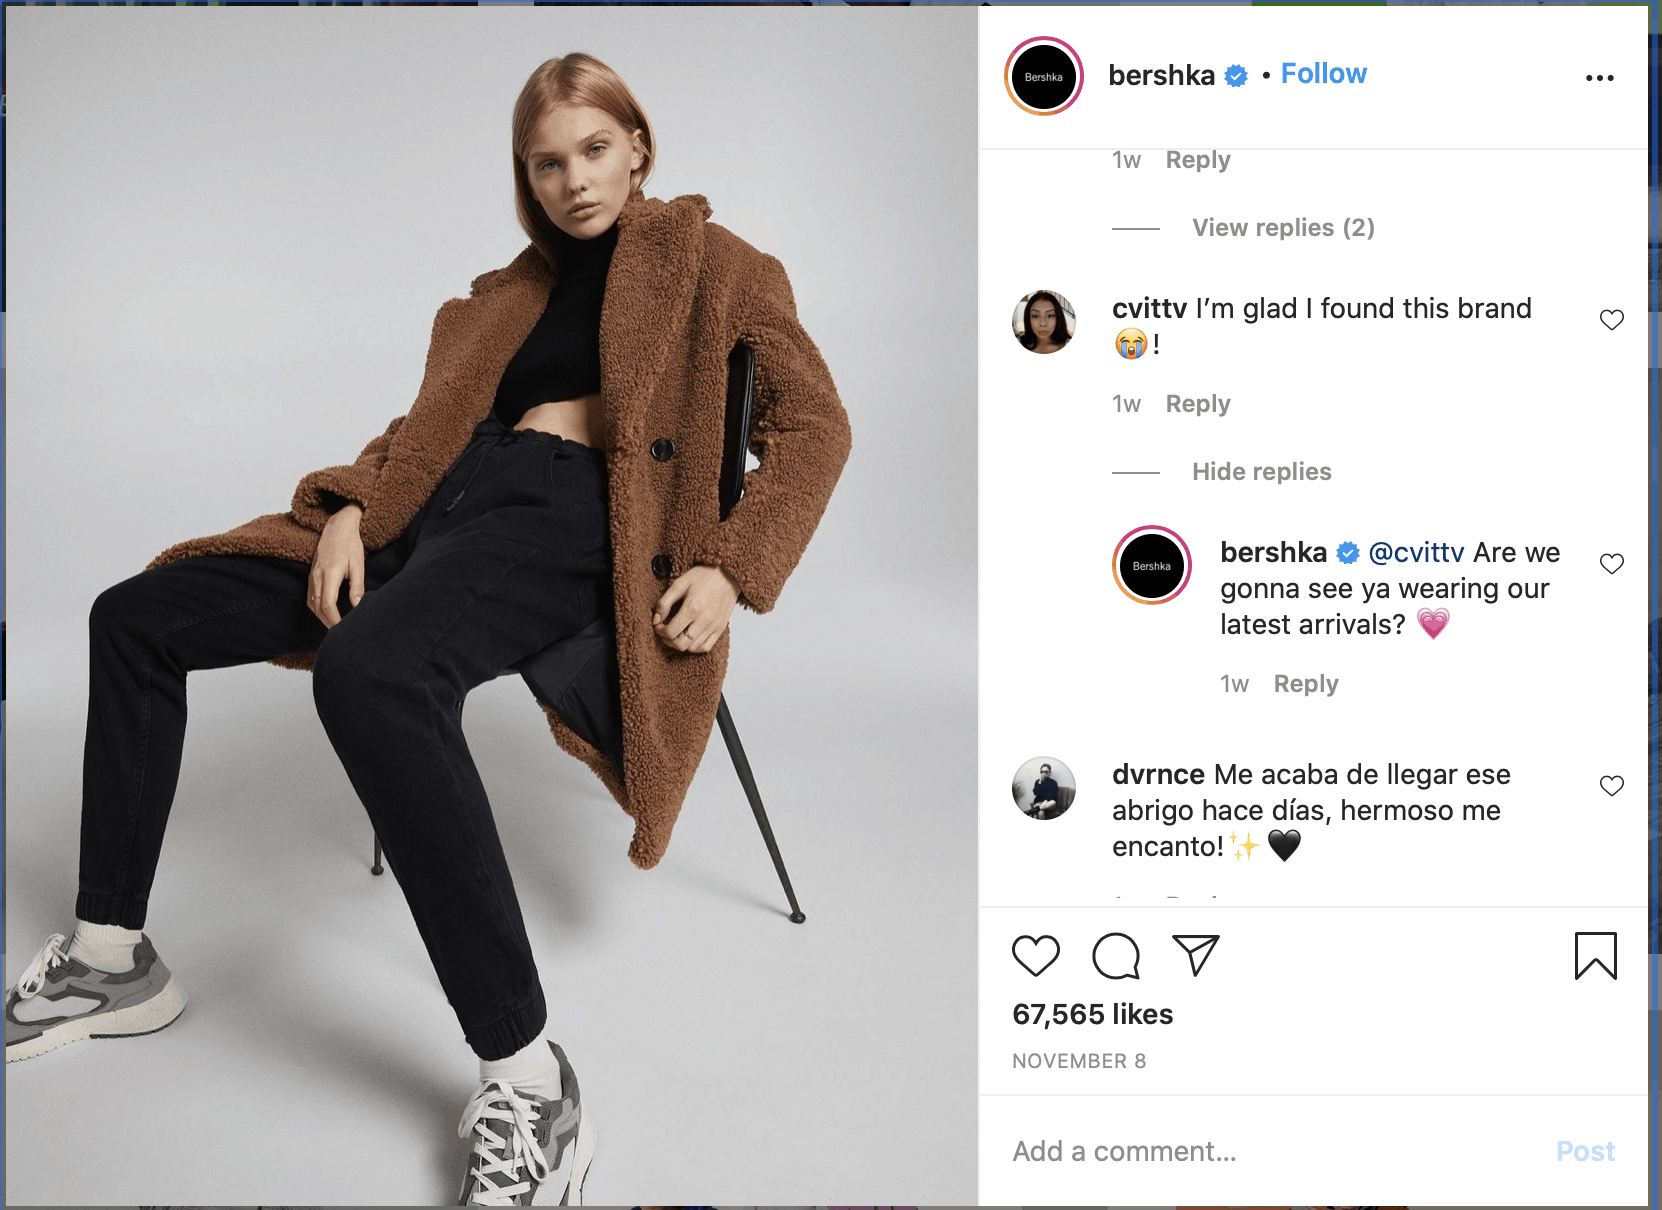 example of customer service on Instagram.